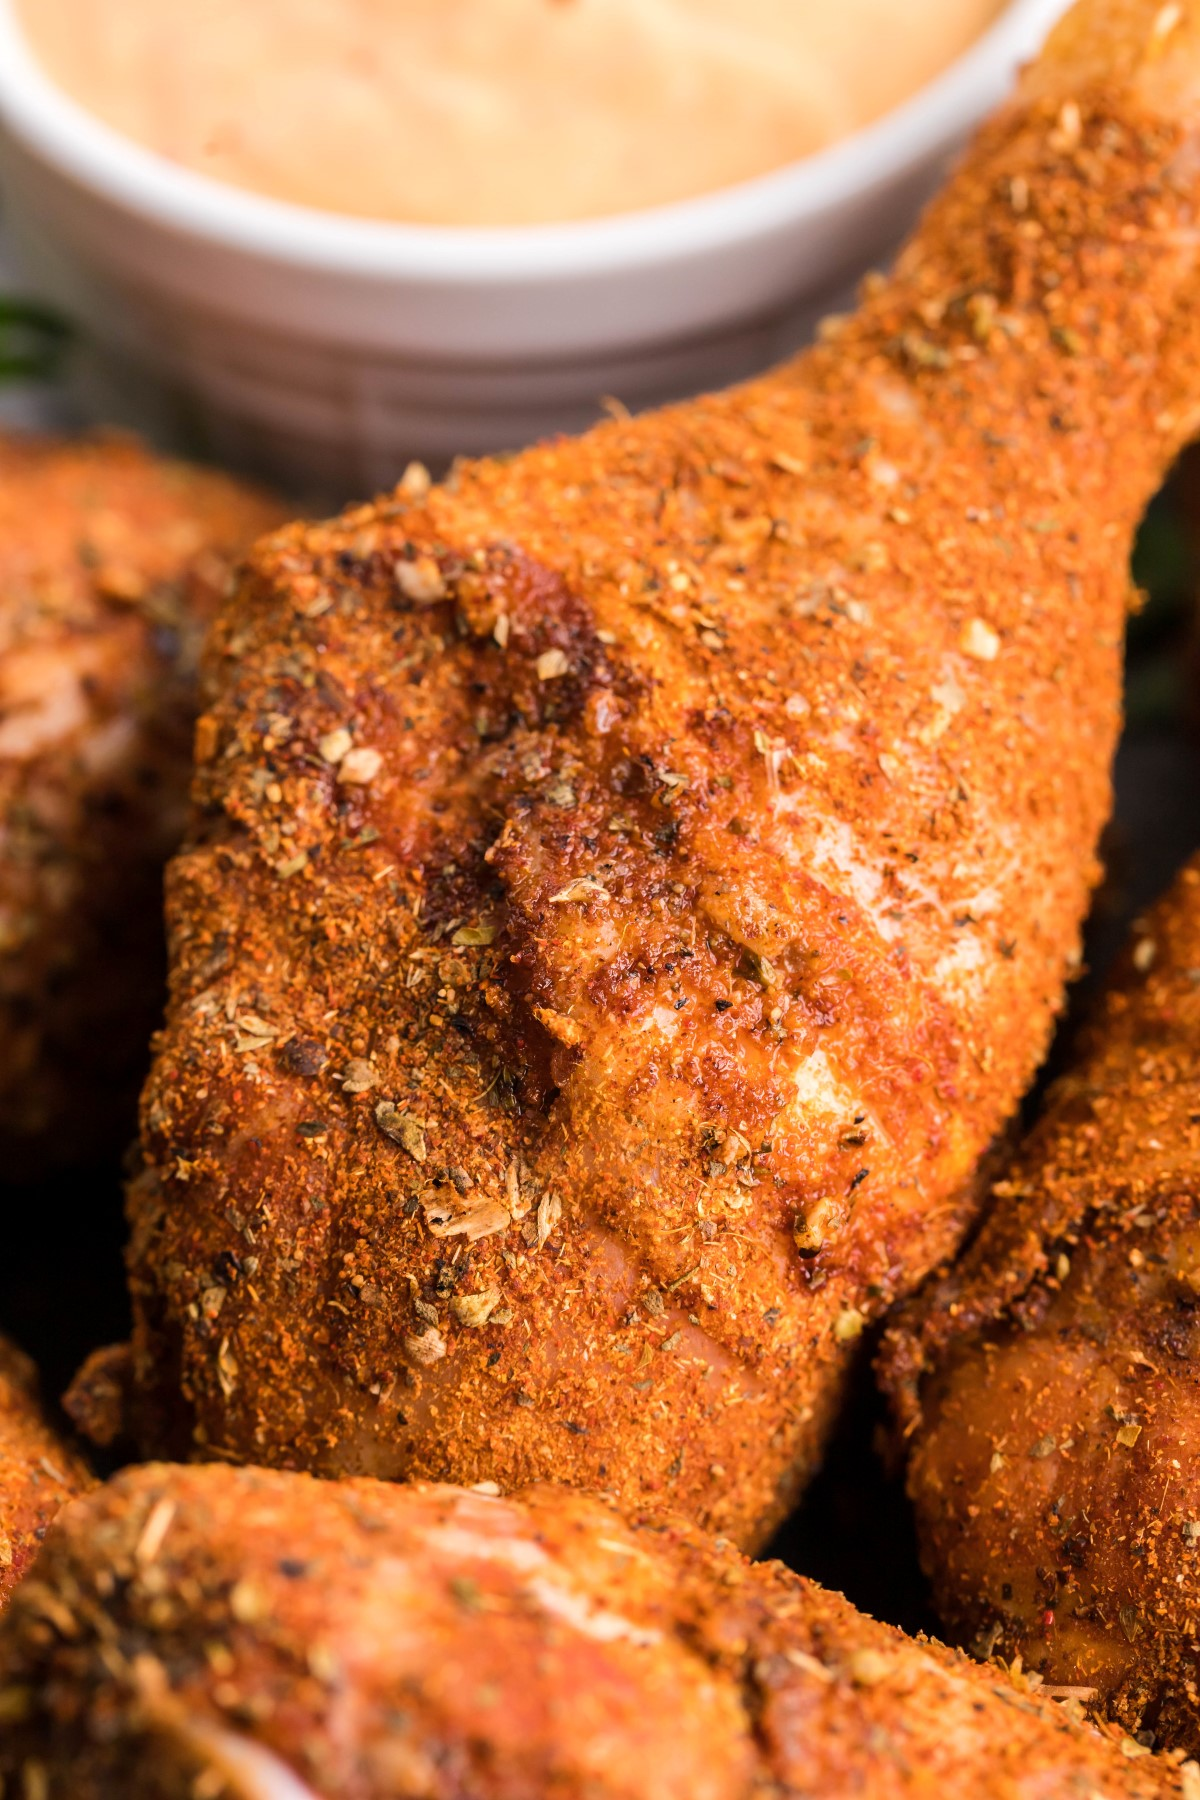 Close up of a smoked chicken drumstick with dry rub